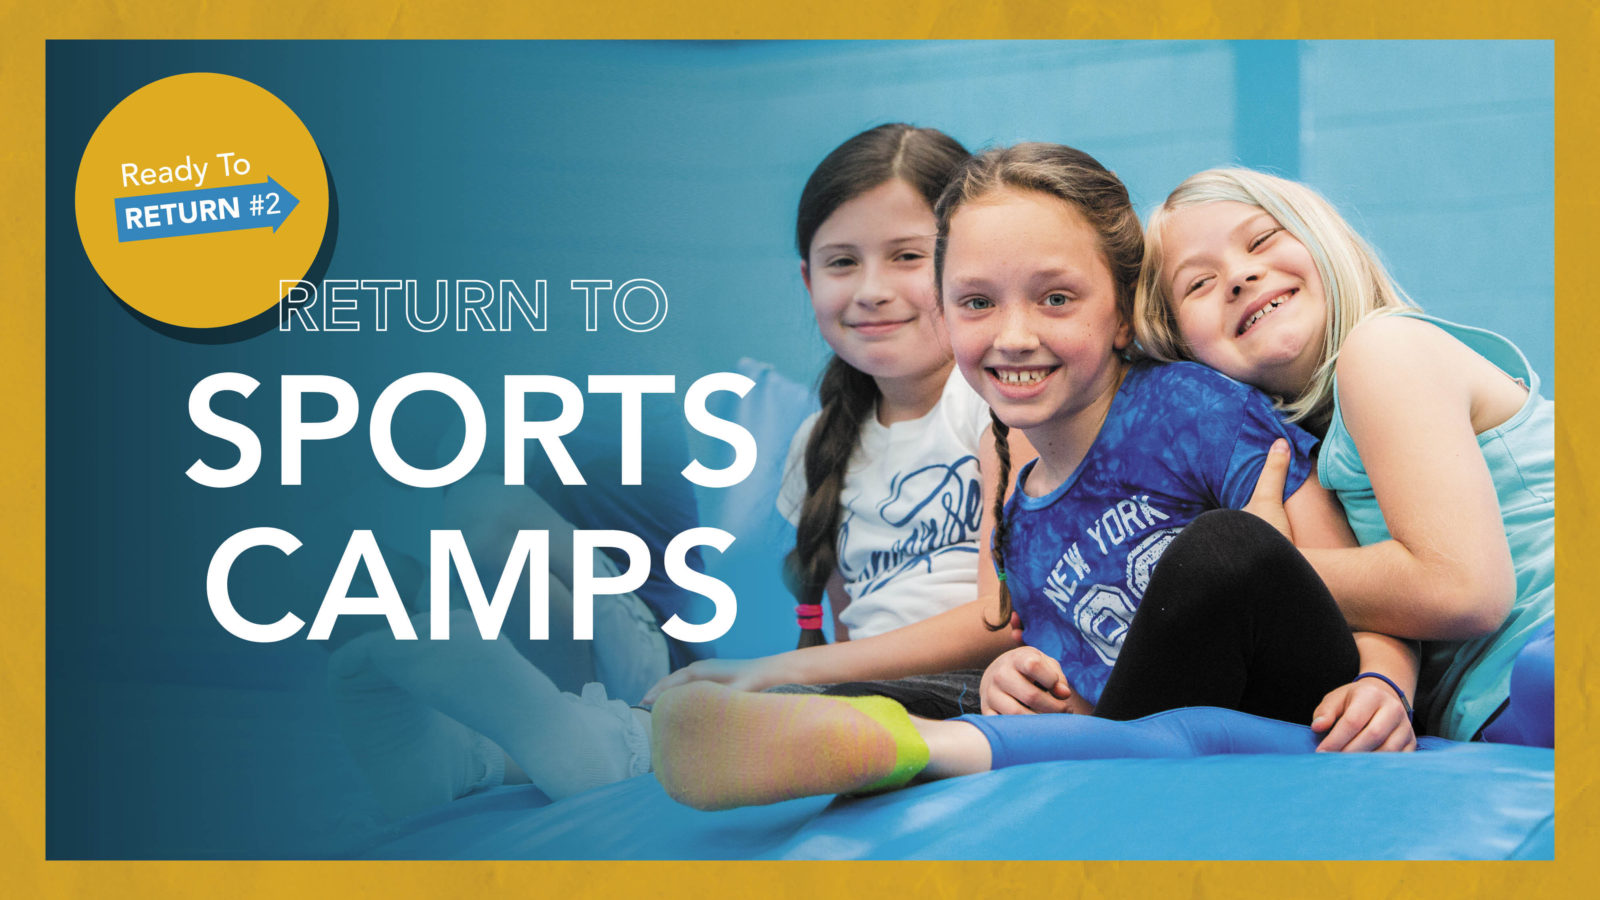 ASV 18404 May 2021 Retained Fees Social assets summer camps asset facebook